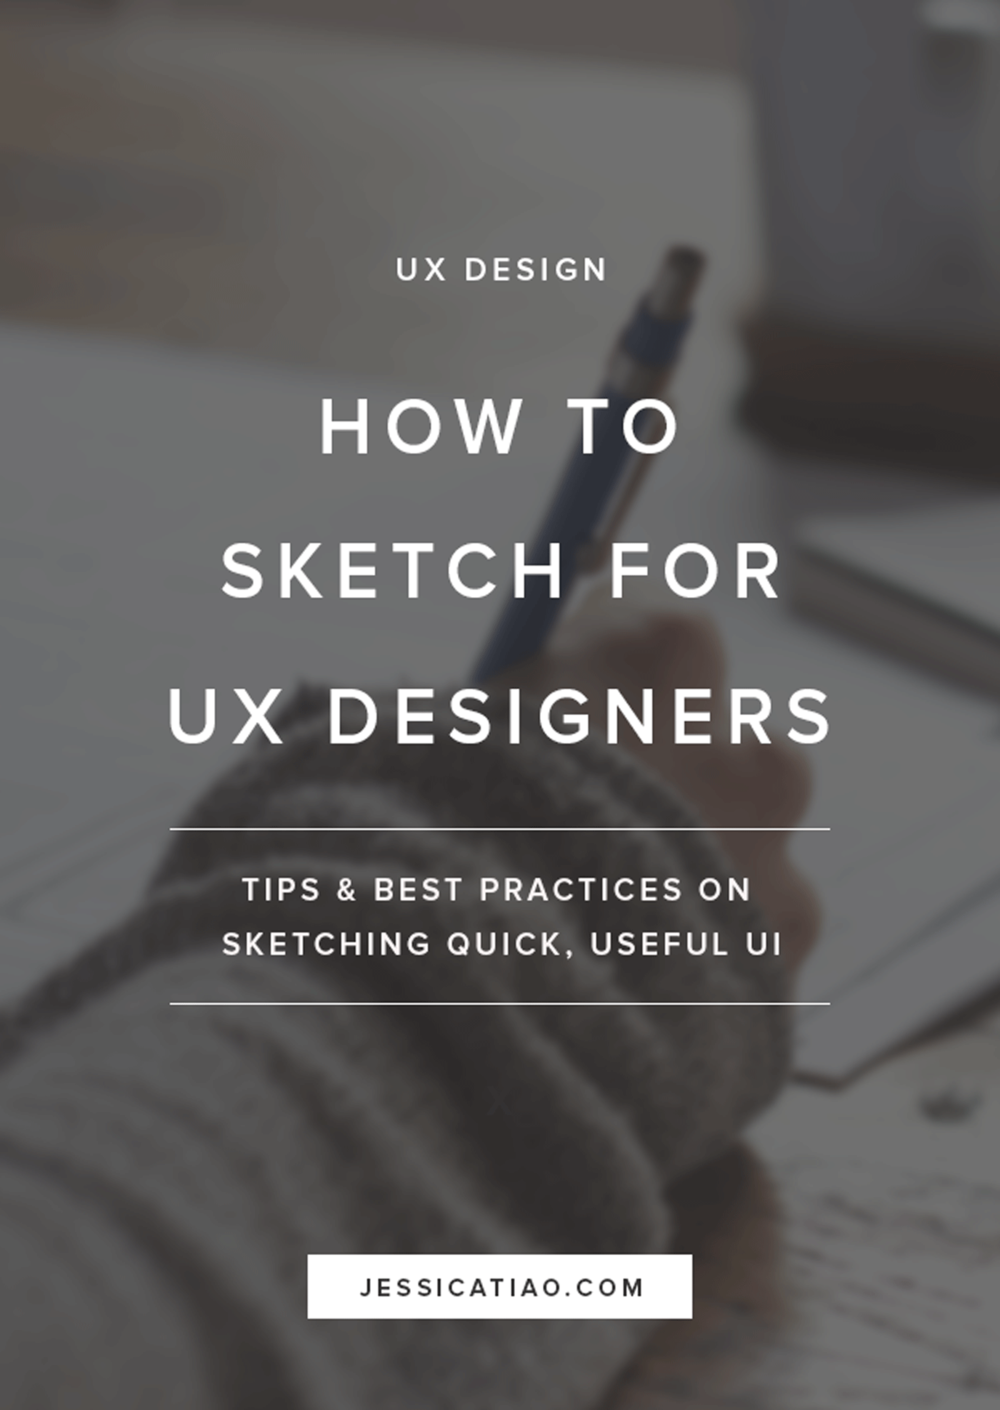 How-to-Sketch-for-UX-Designers.png